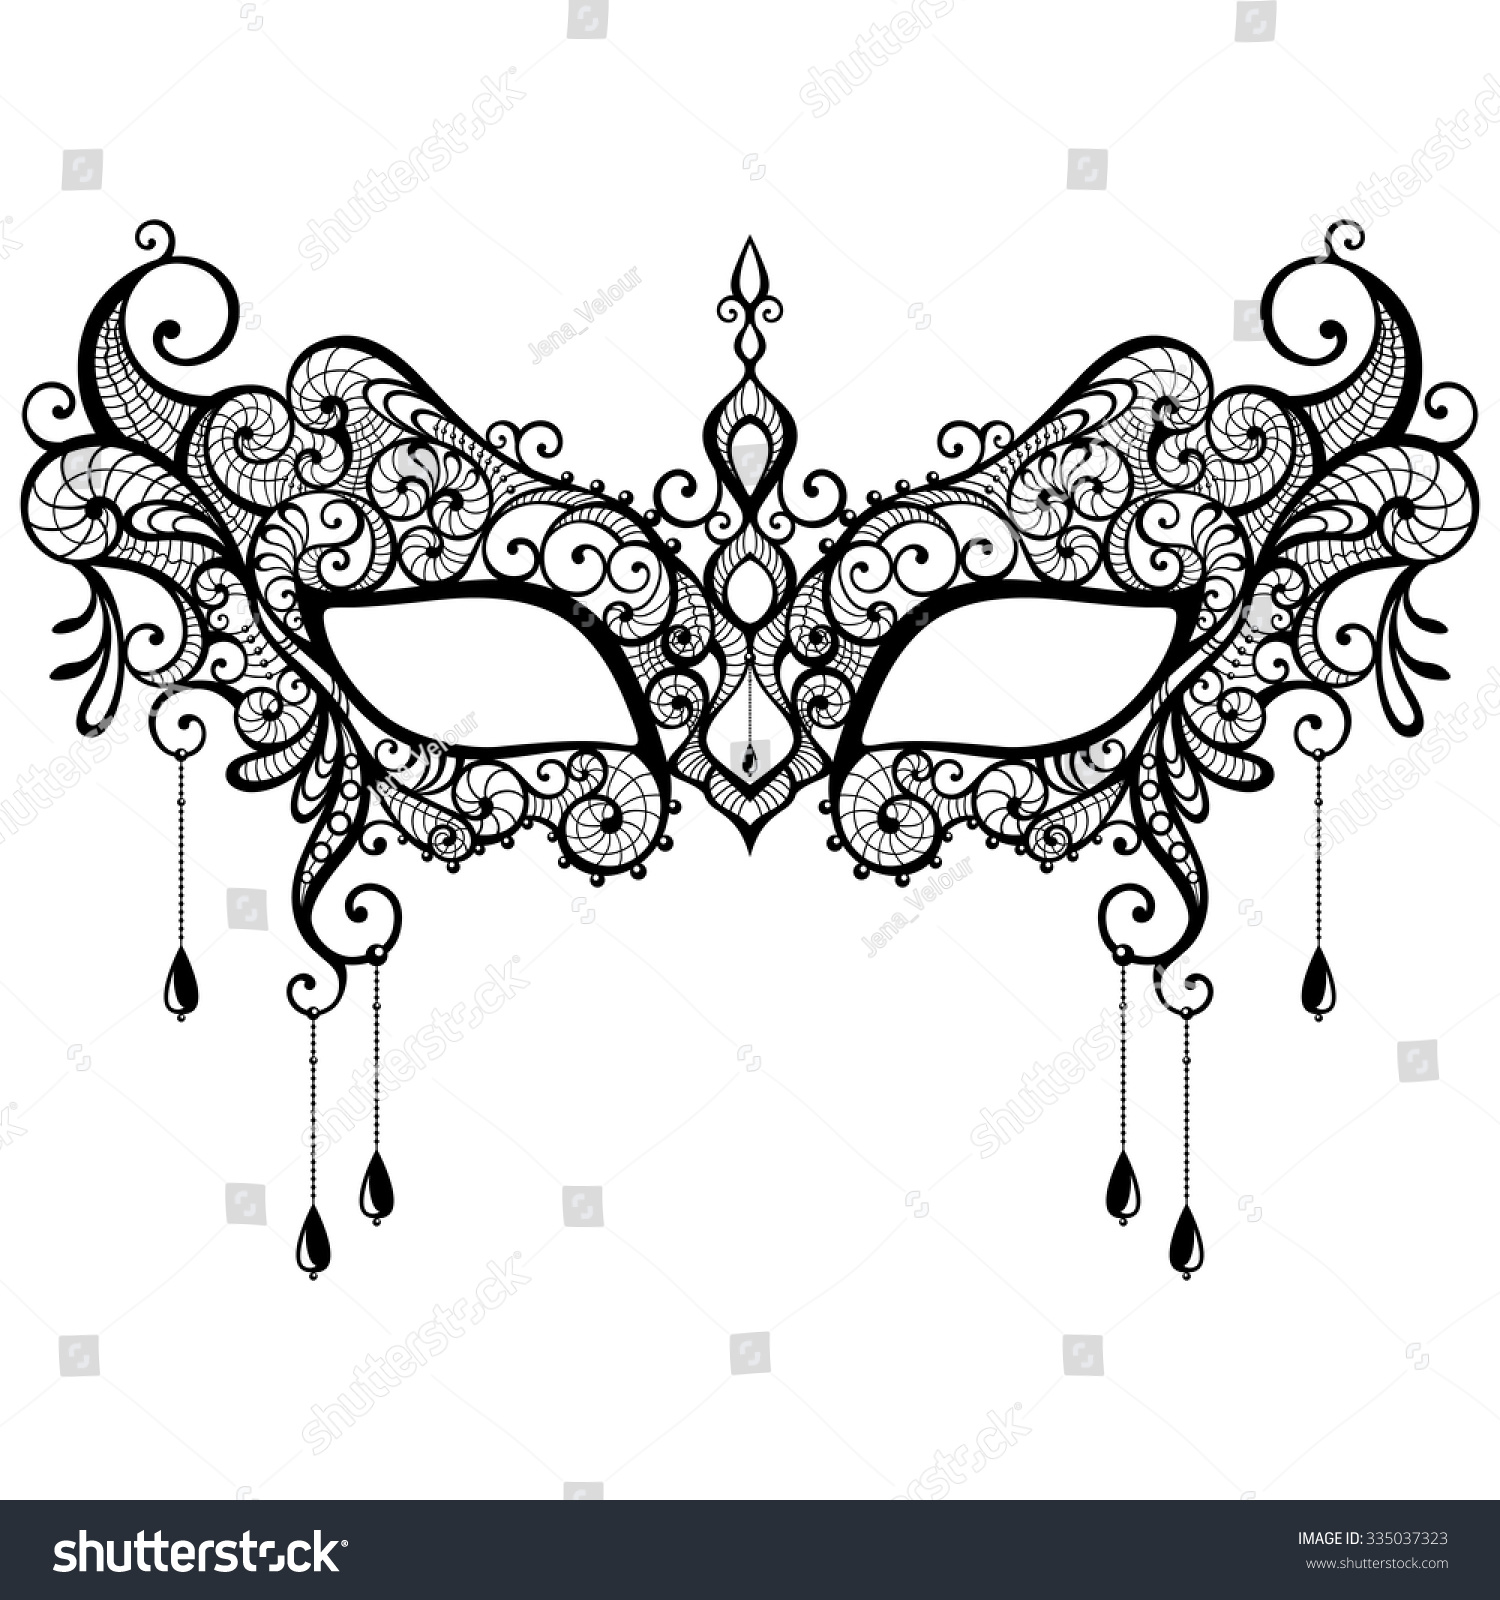 1500x1600 Stock Vector Beautiful Black Lace Masquerade Mask Isolated On